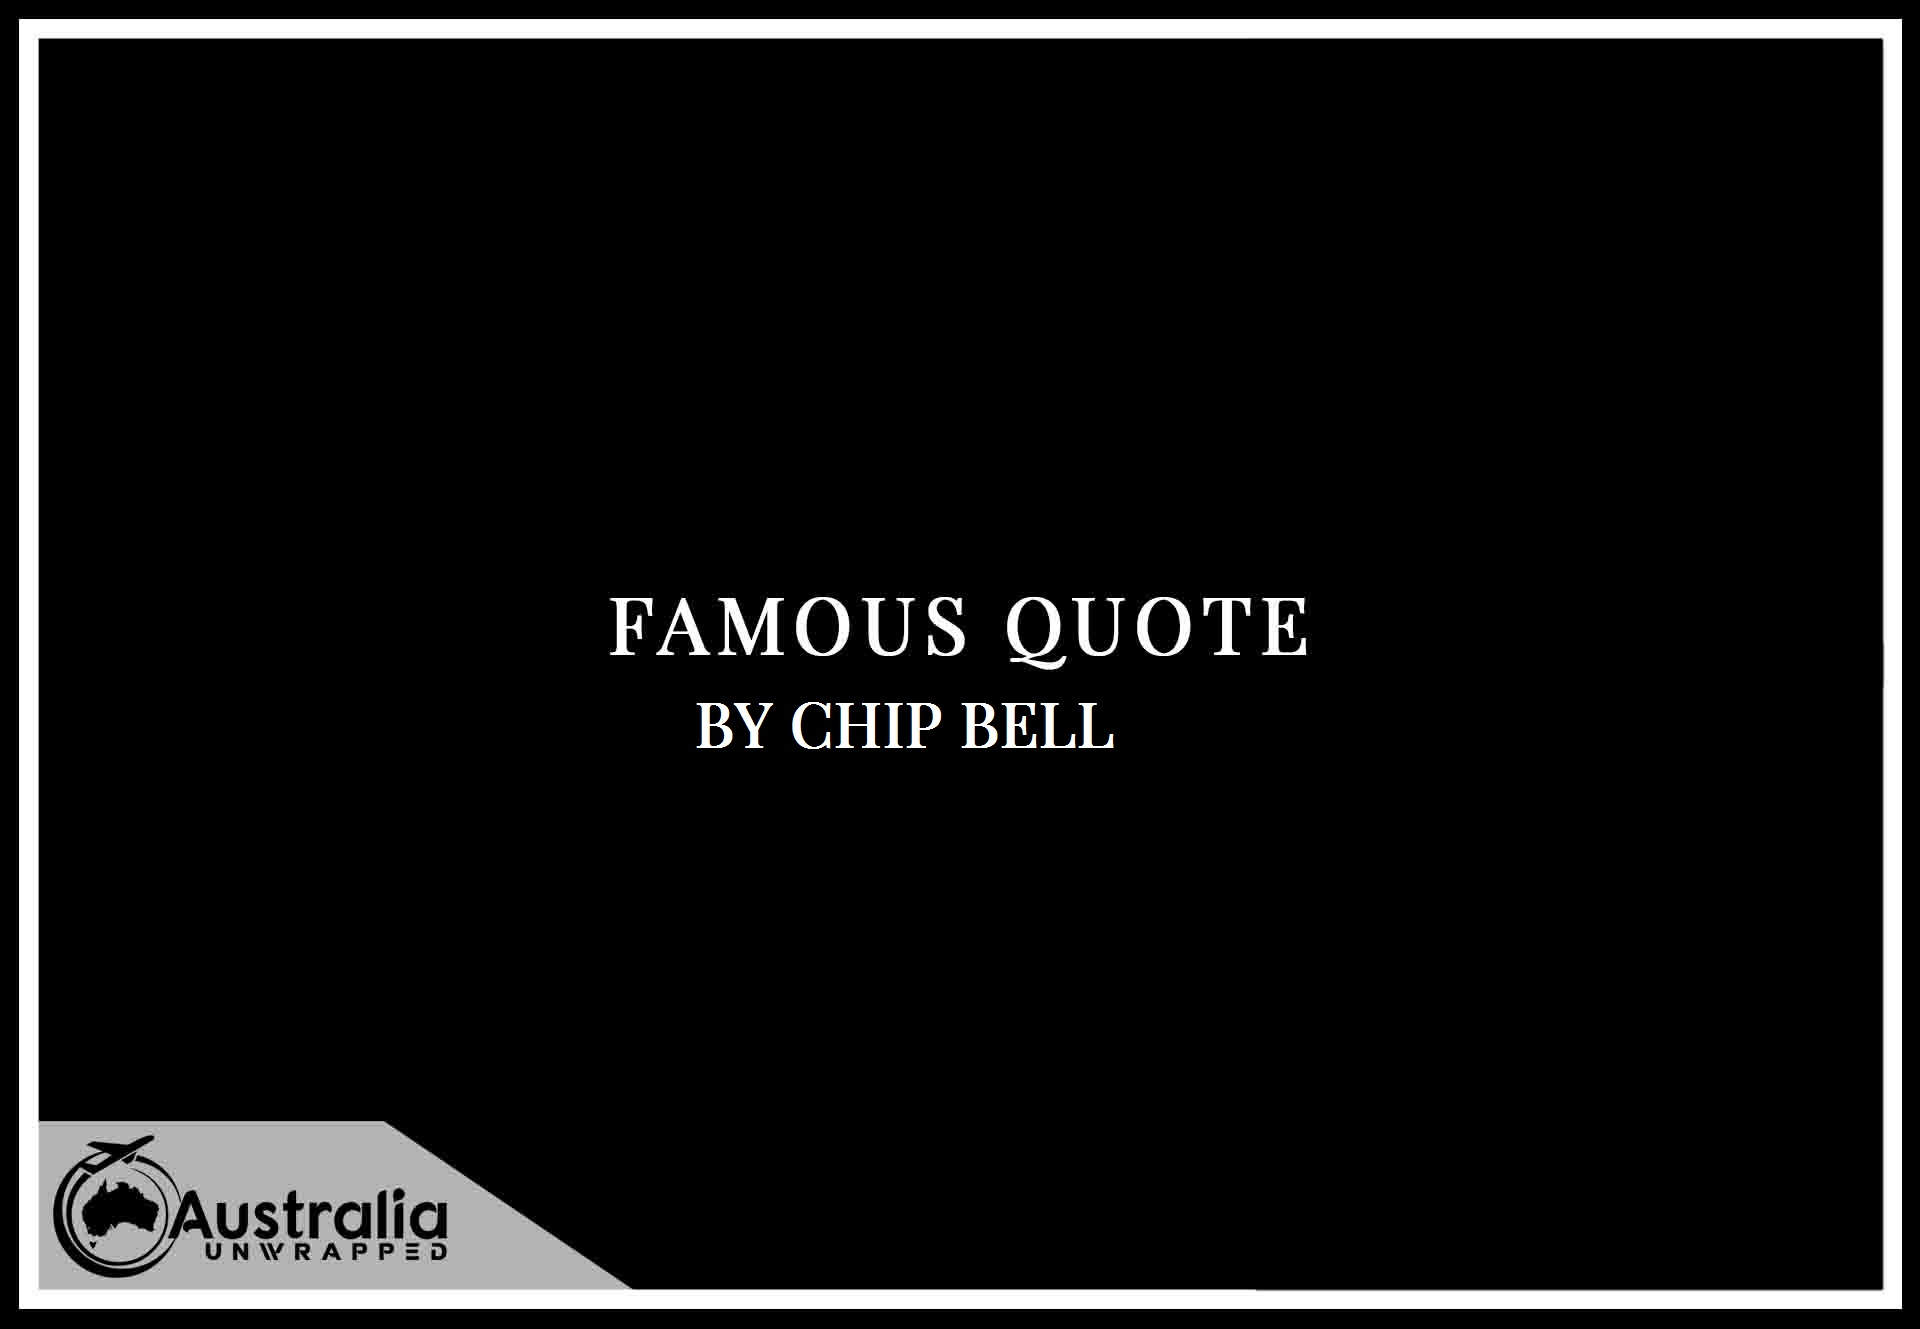 Chip Bell's Top 1 Popular and Famous Quotes